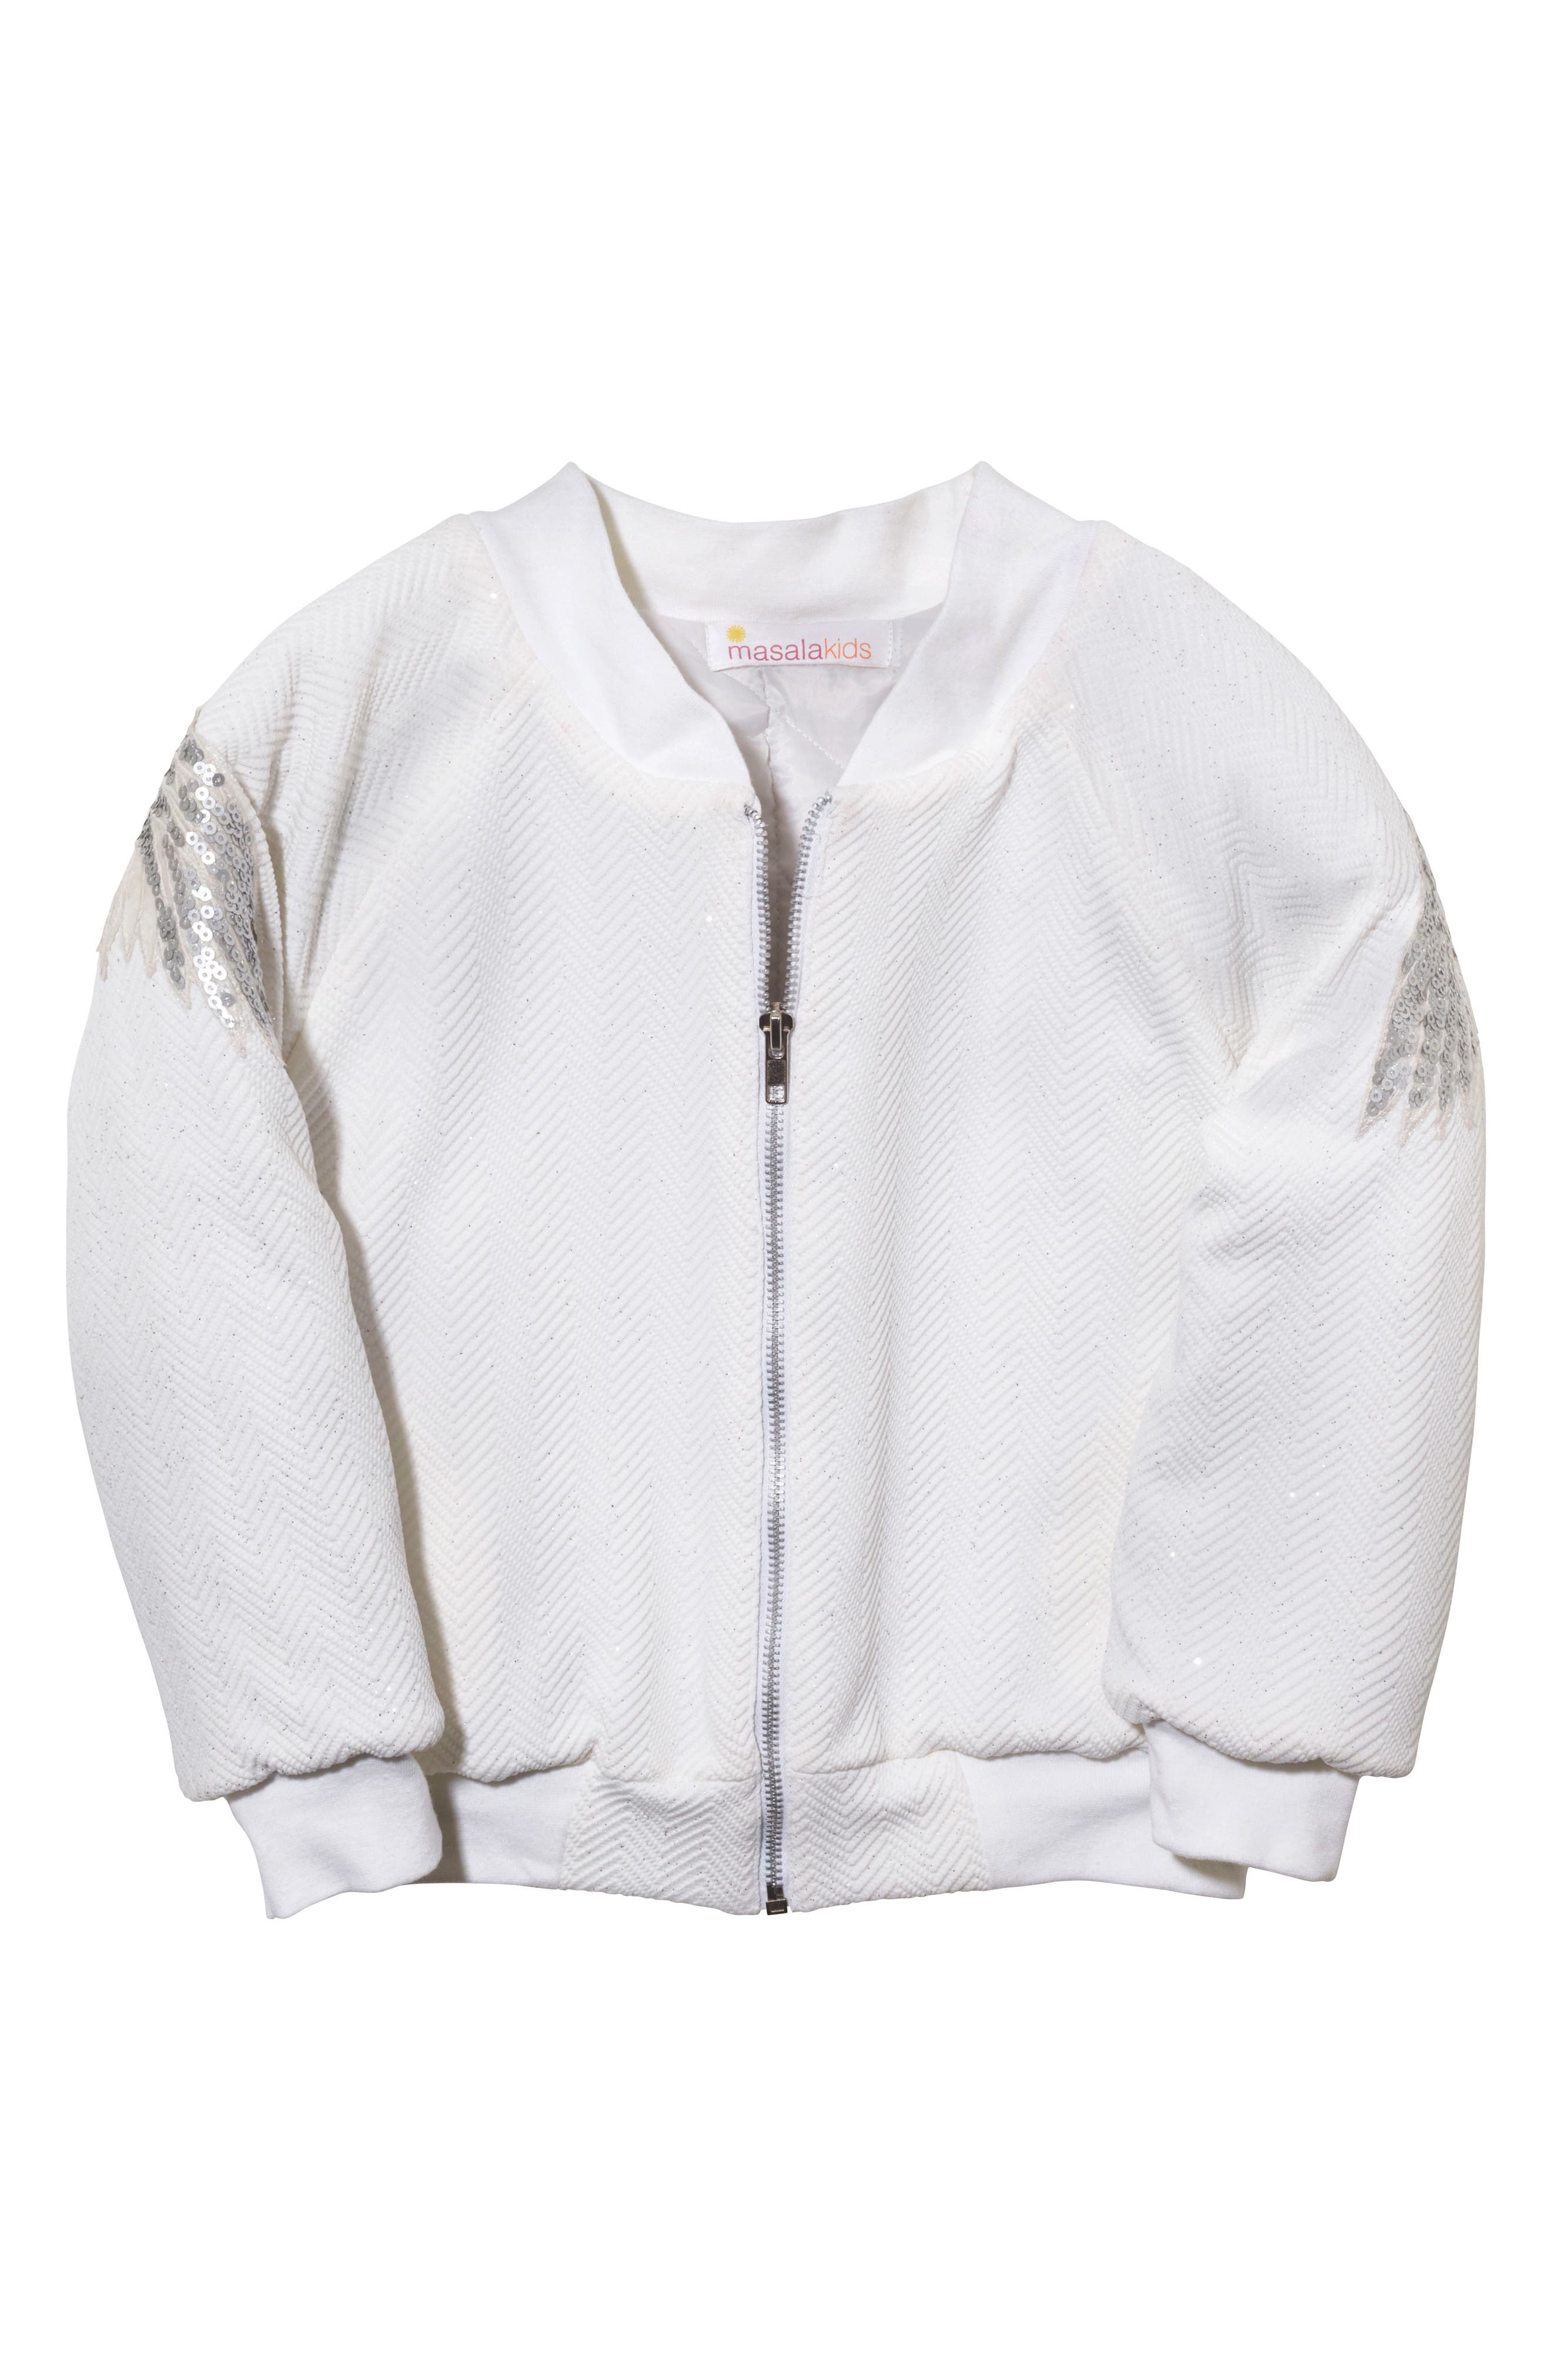 Wings Sequin Bomber Jacket,                         Main,                         color, Ivory